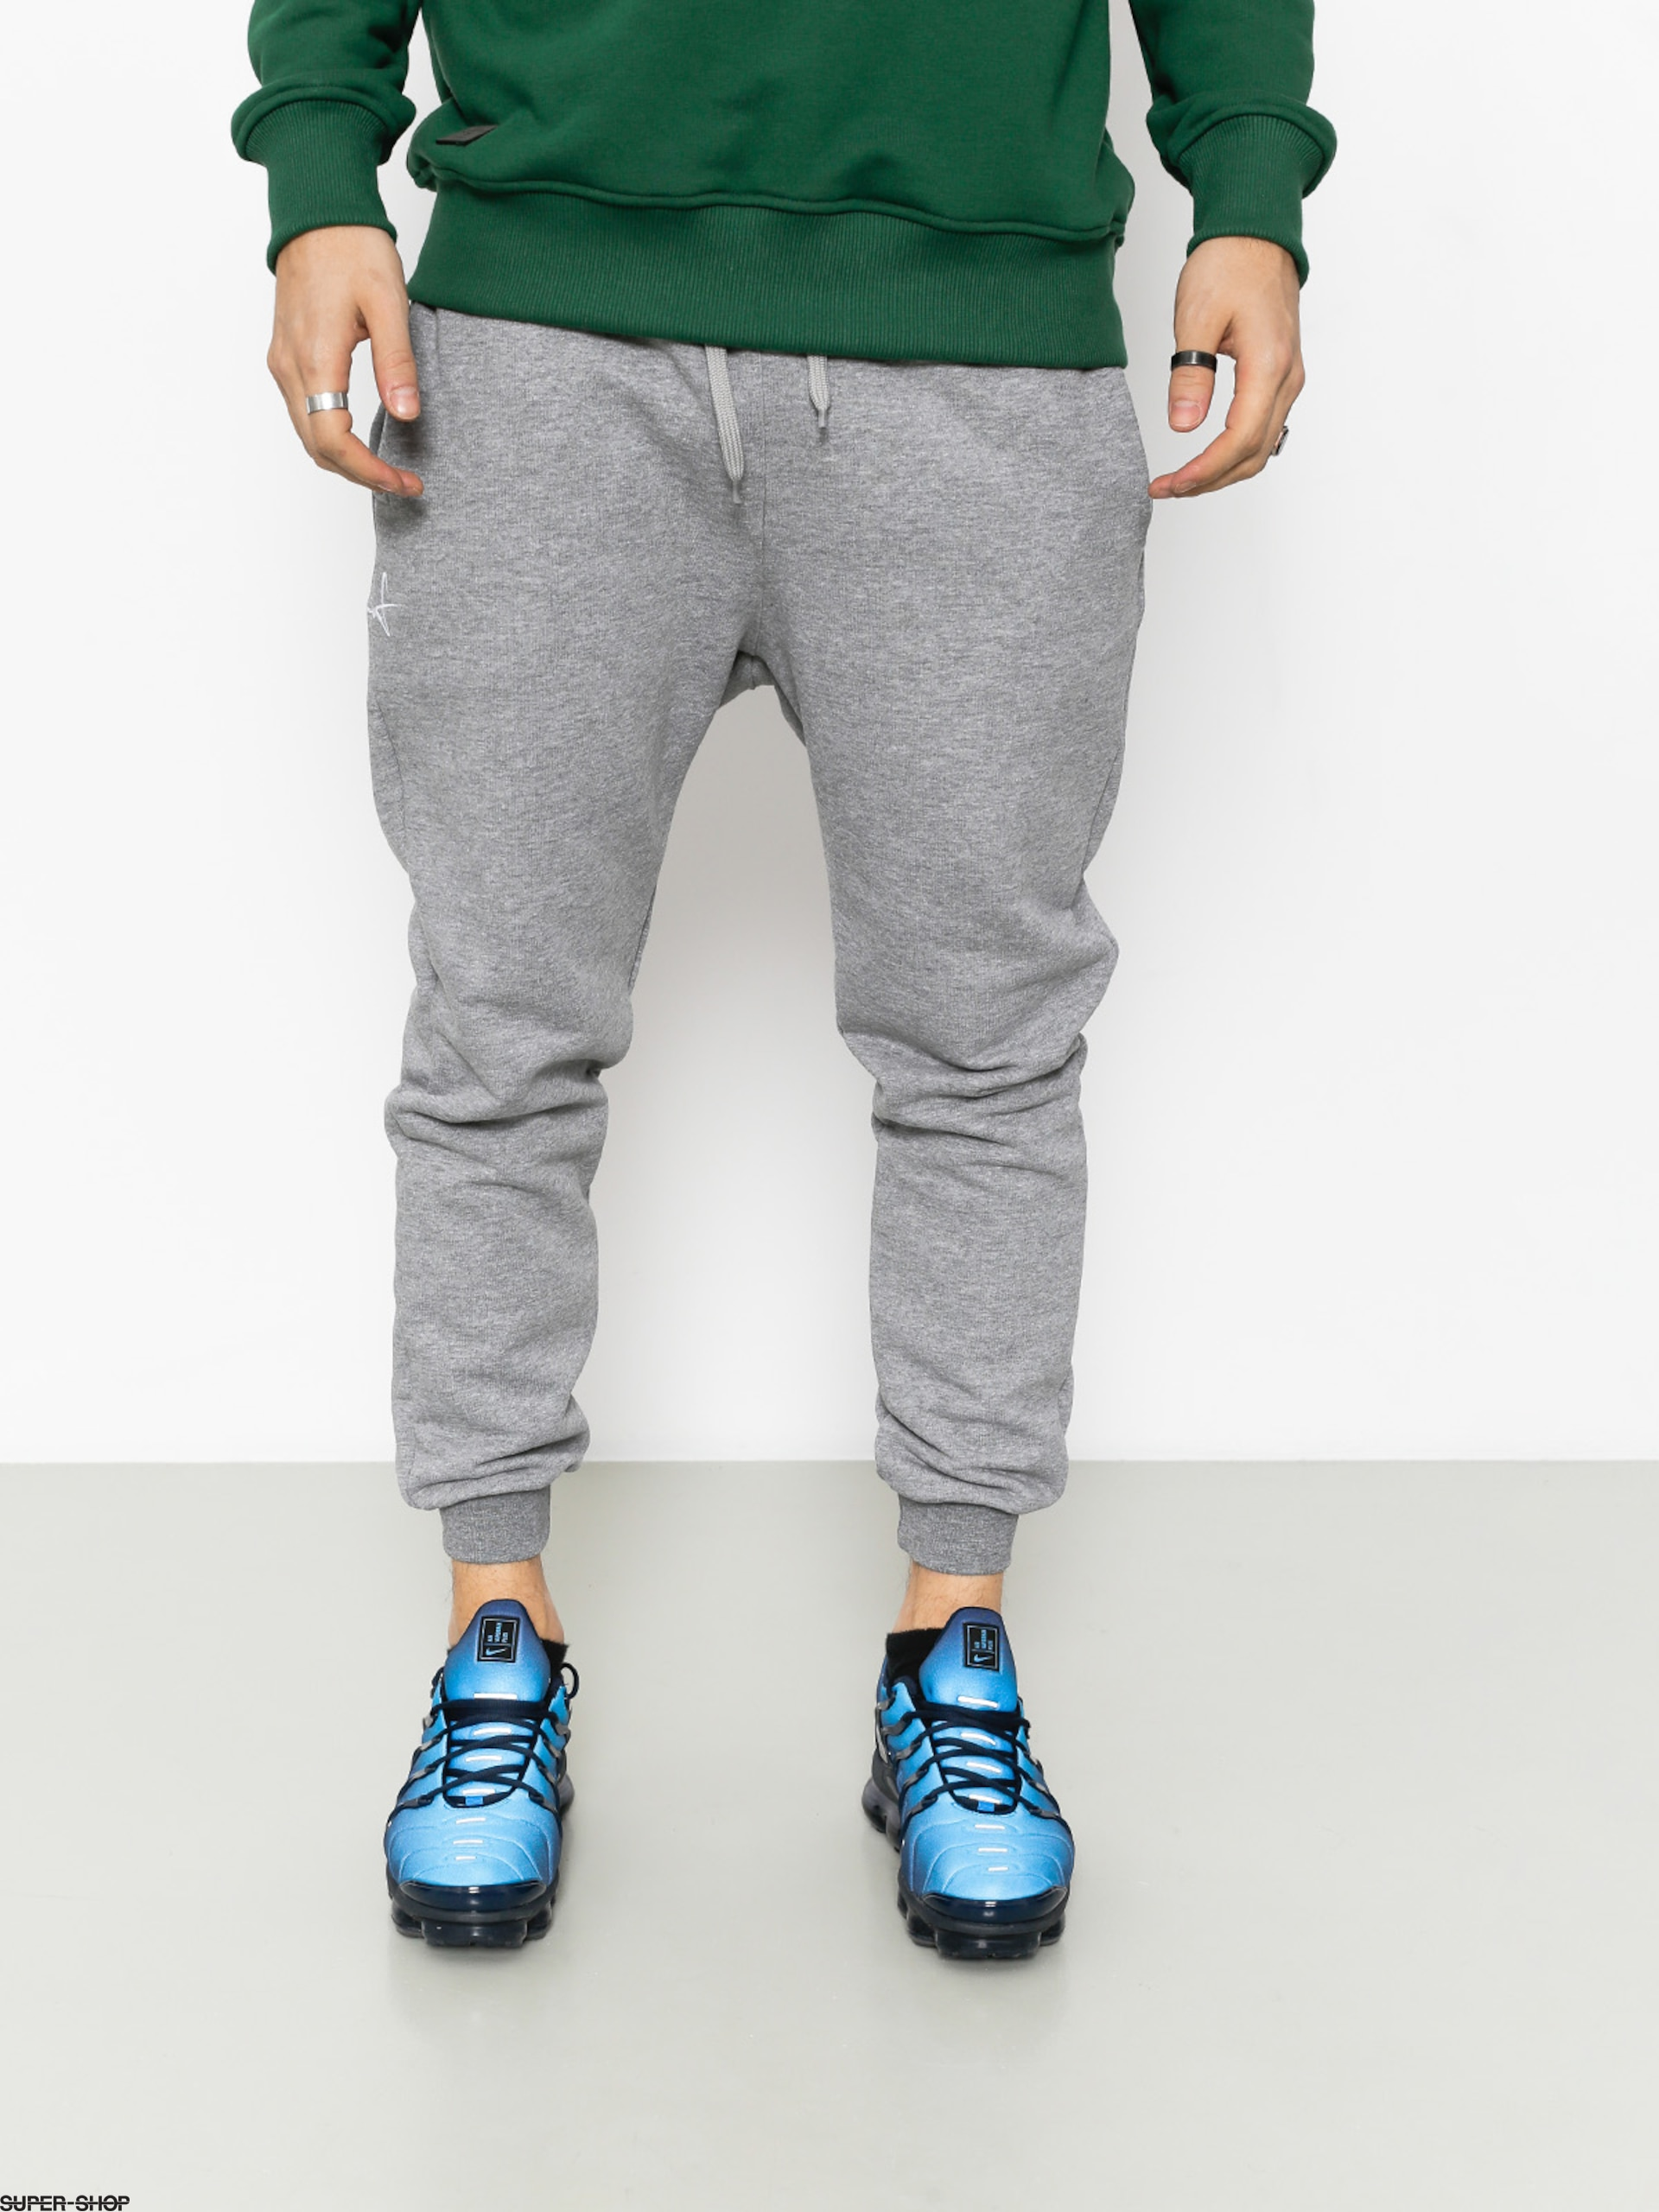 Stoprocent Pants Base Jogger Drs (grey)